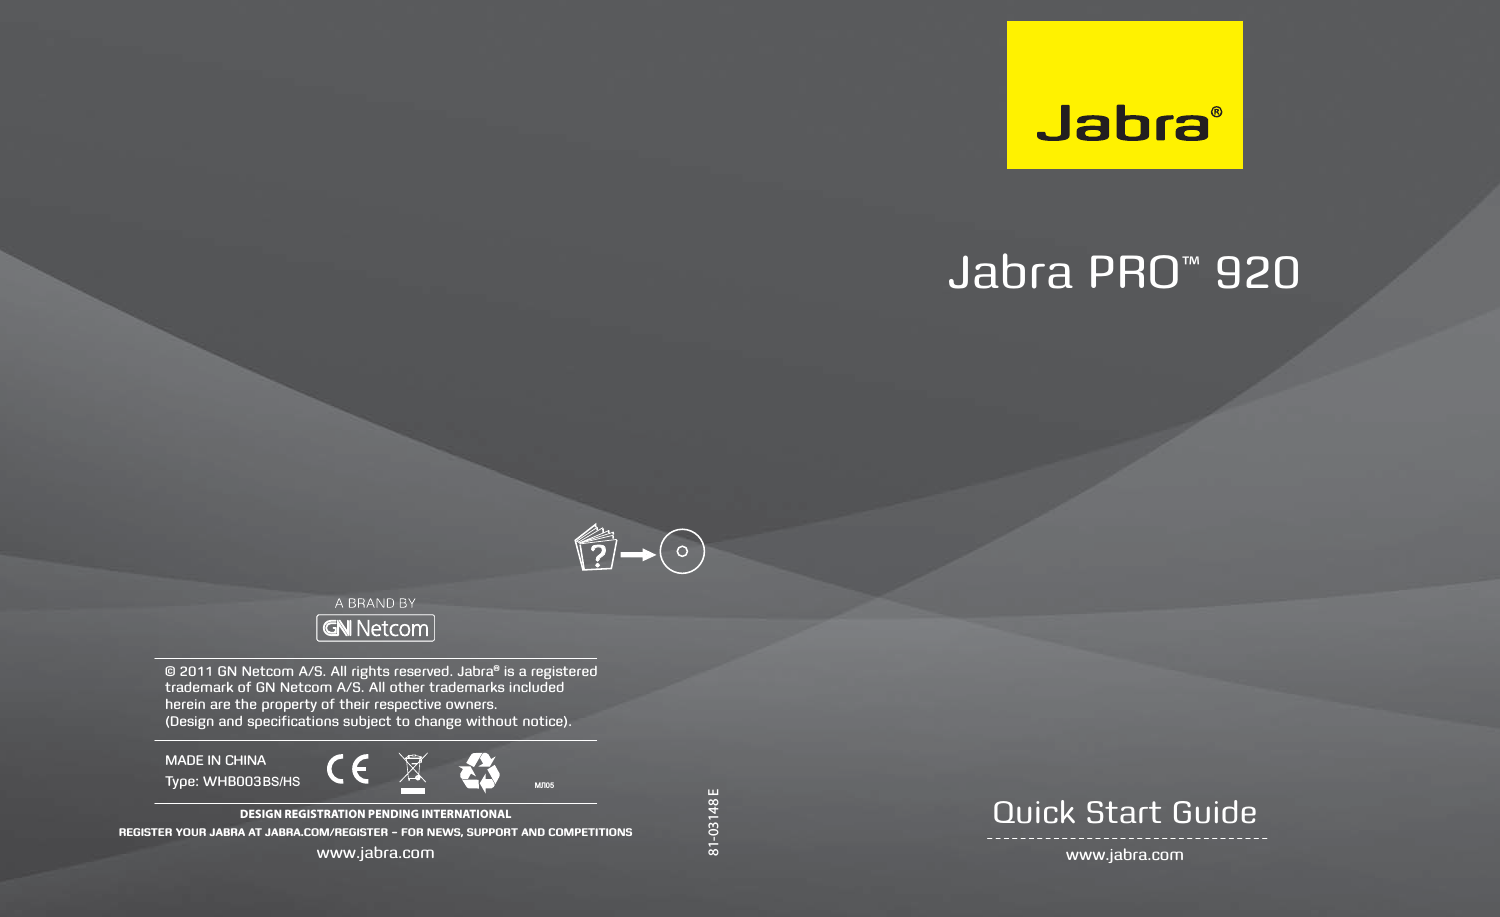 Gn Netcom Whb003hs Jabra Pro 9x0 Us Dect Headset User Manual 15 Wbh003bs Userman B1